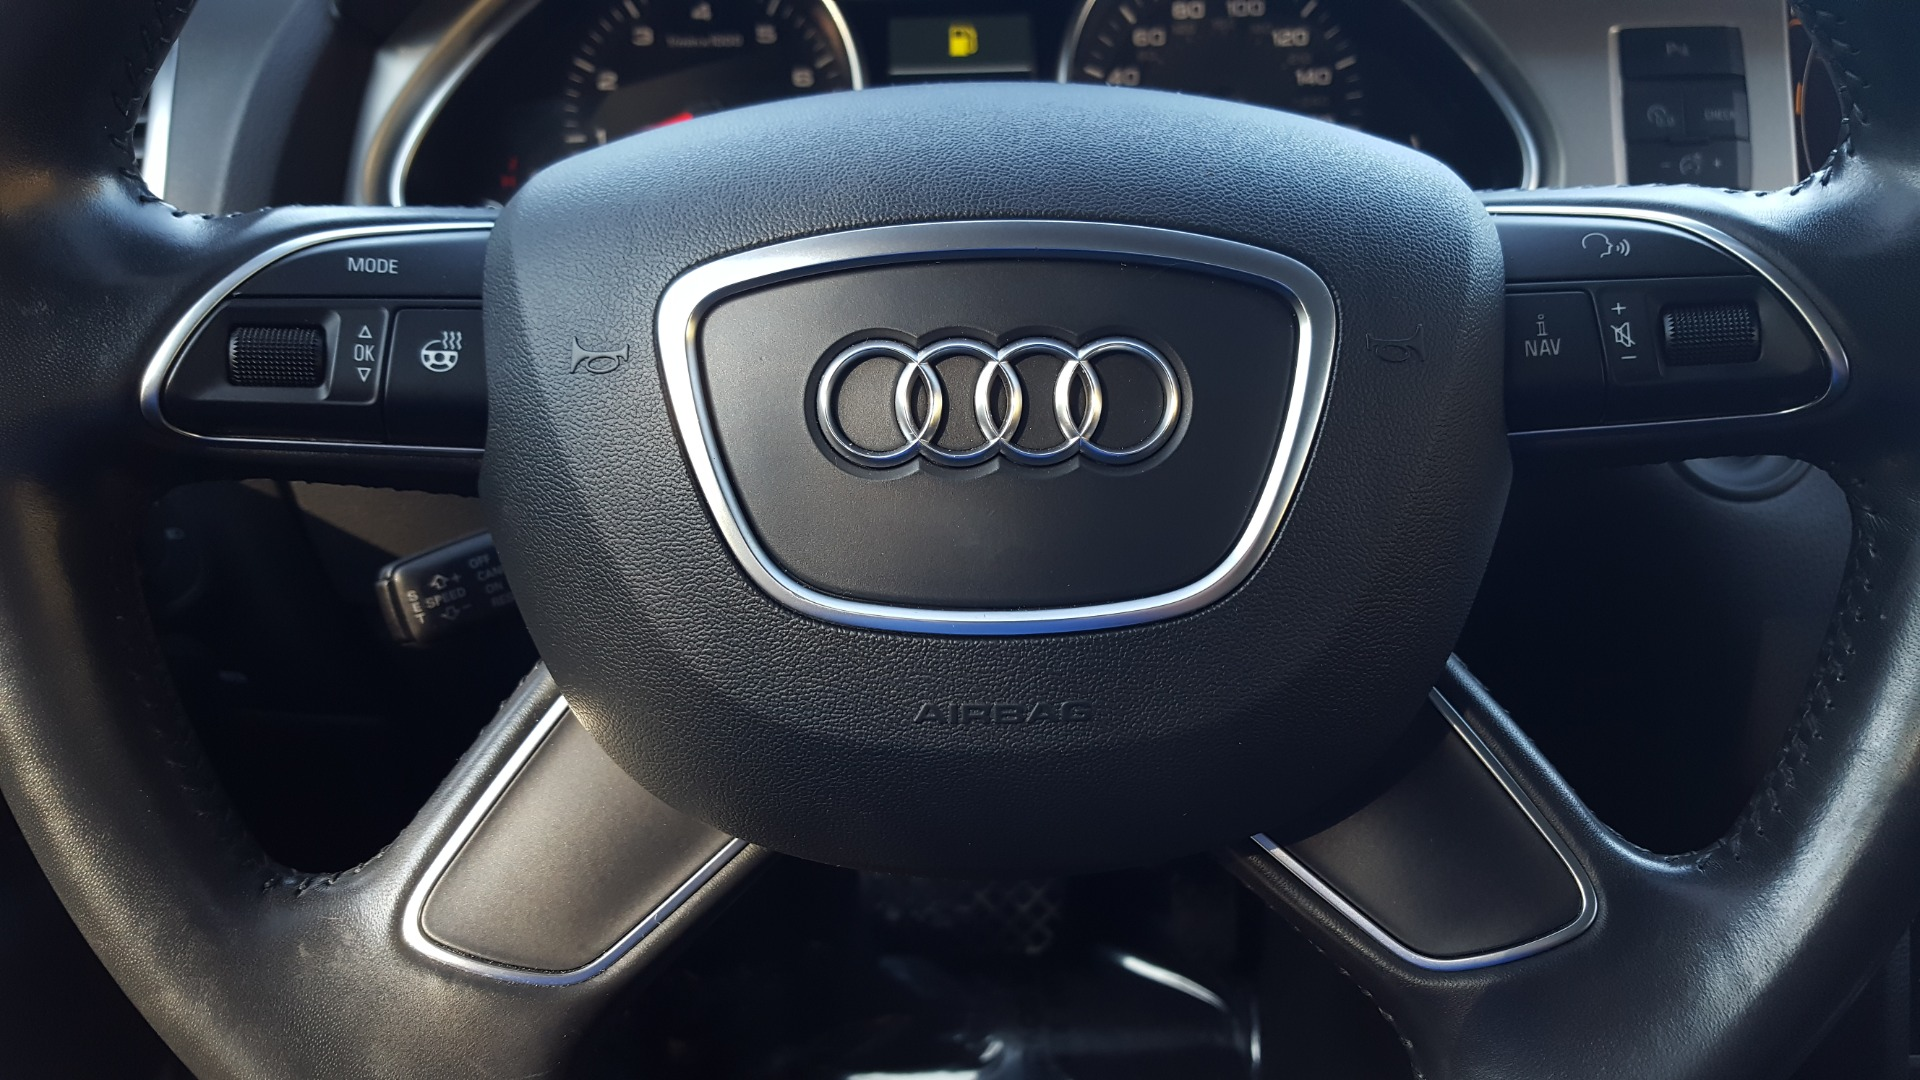 Used 2015 Audi Q7 3.0T PREMIUM PLUS TIPTRONIC / NAV / OFFROAD PLUS / WARM WEATHER / COLD WEAT for sale Sold at Formula Imports in Charlotte NC 28227 43